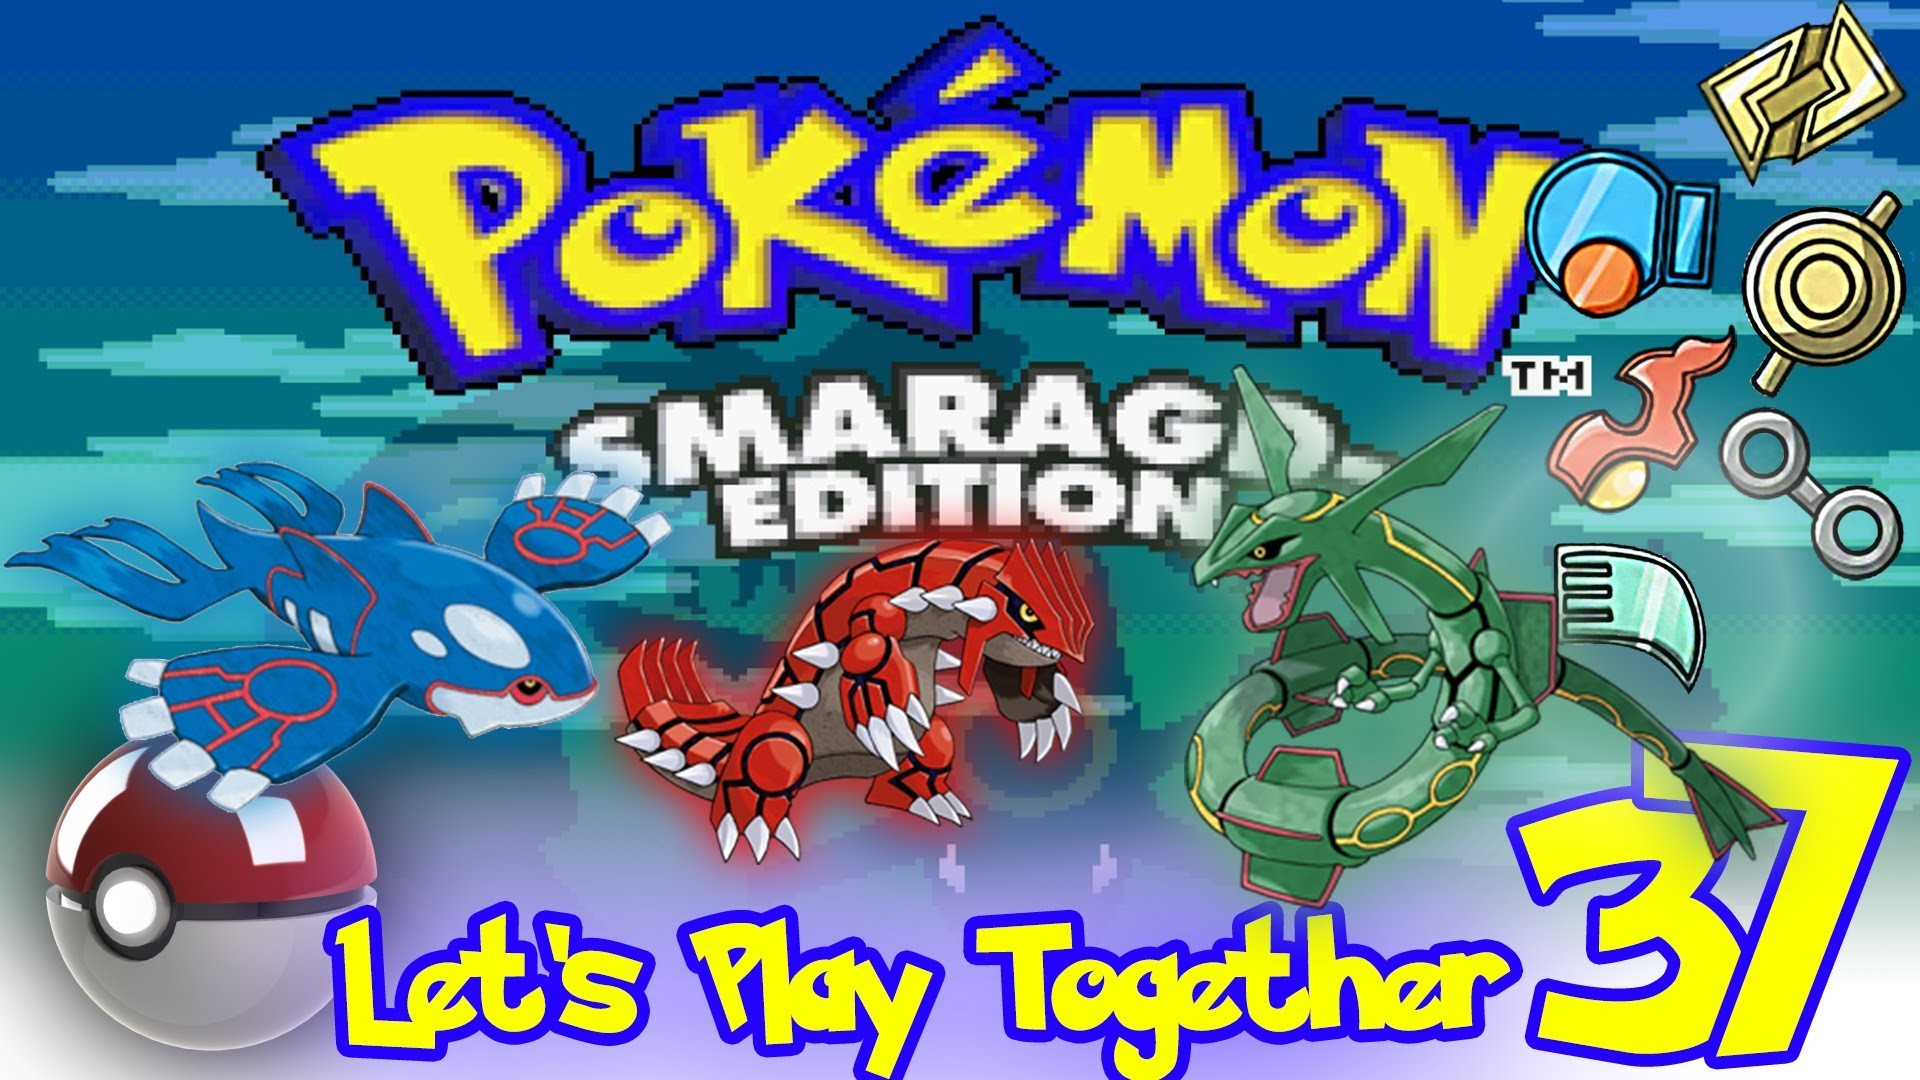 EPIC [Rayquaza / Kyogre / Groudon] – Let's Play Together Pokemon Smaragd  #37 – YouTube